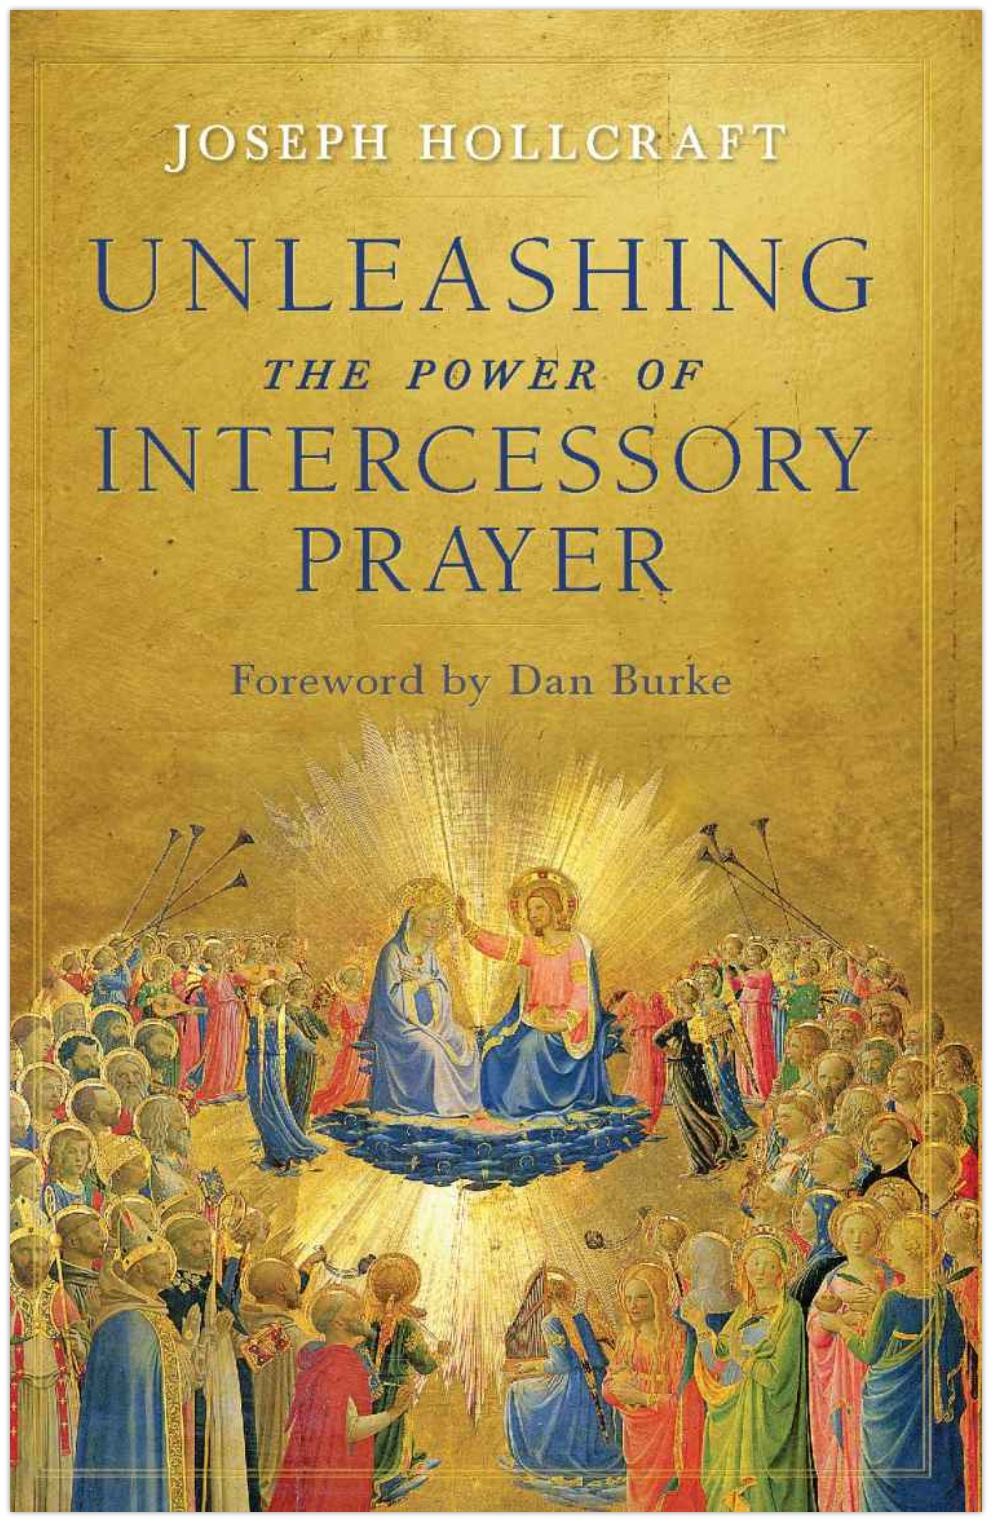 Unleashing the Power of Intercessory Prayer - Book Cover